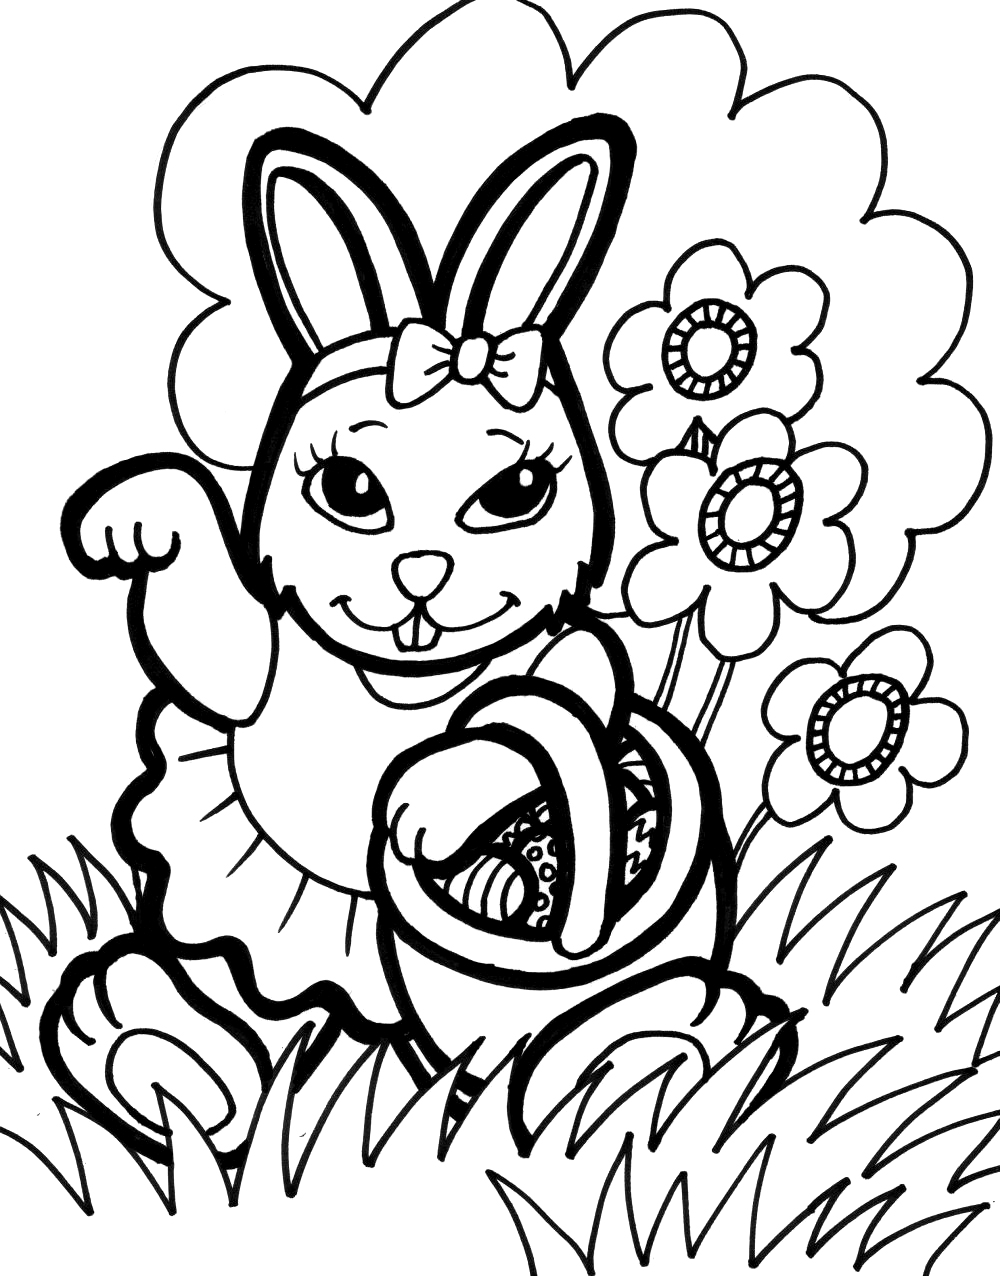 coloring pictures rabbit free printable rabbit coloring pages for kids rabbit coloring pictures